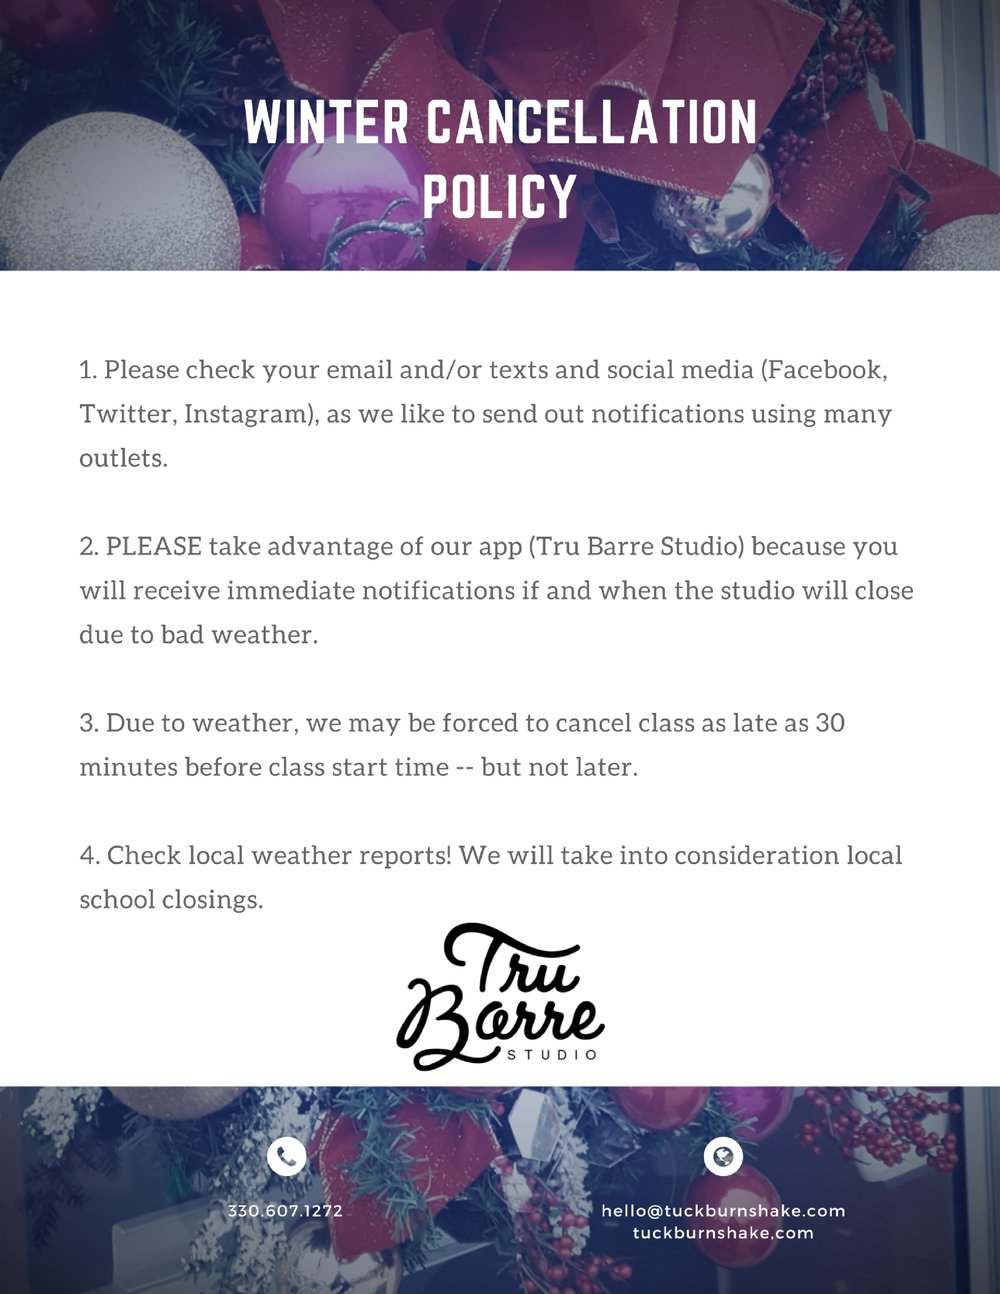 (Can't see the image? Here is the text version:) 1. Please check your email and/or texts and social media (Facebook, Twitter, Instagram), as we like to send out notifications using many outlets.  2. PLEASE take advantage of our app (Tru Barre Studio) because you will receive immediate notifications if and when the studio will close due to bad weather. 3. Due to weather, we may be forced to cancel class as late as 30 minutes before class start time -- but not later. 4. Check local weather reports! We will take into consideration local school closings.